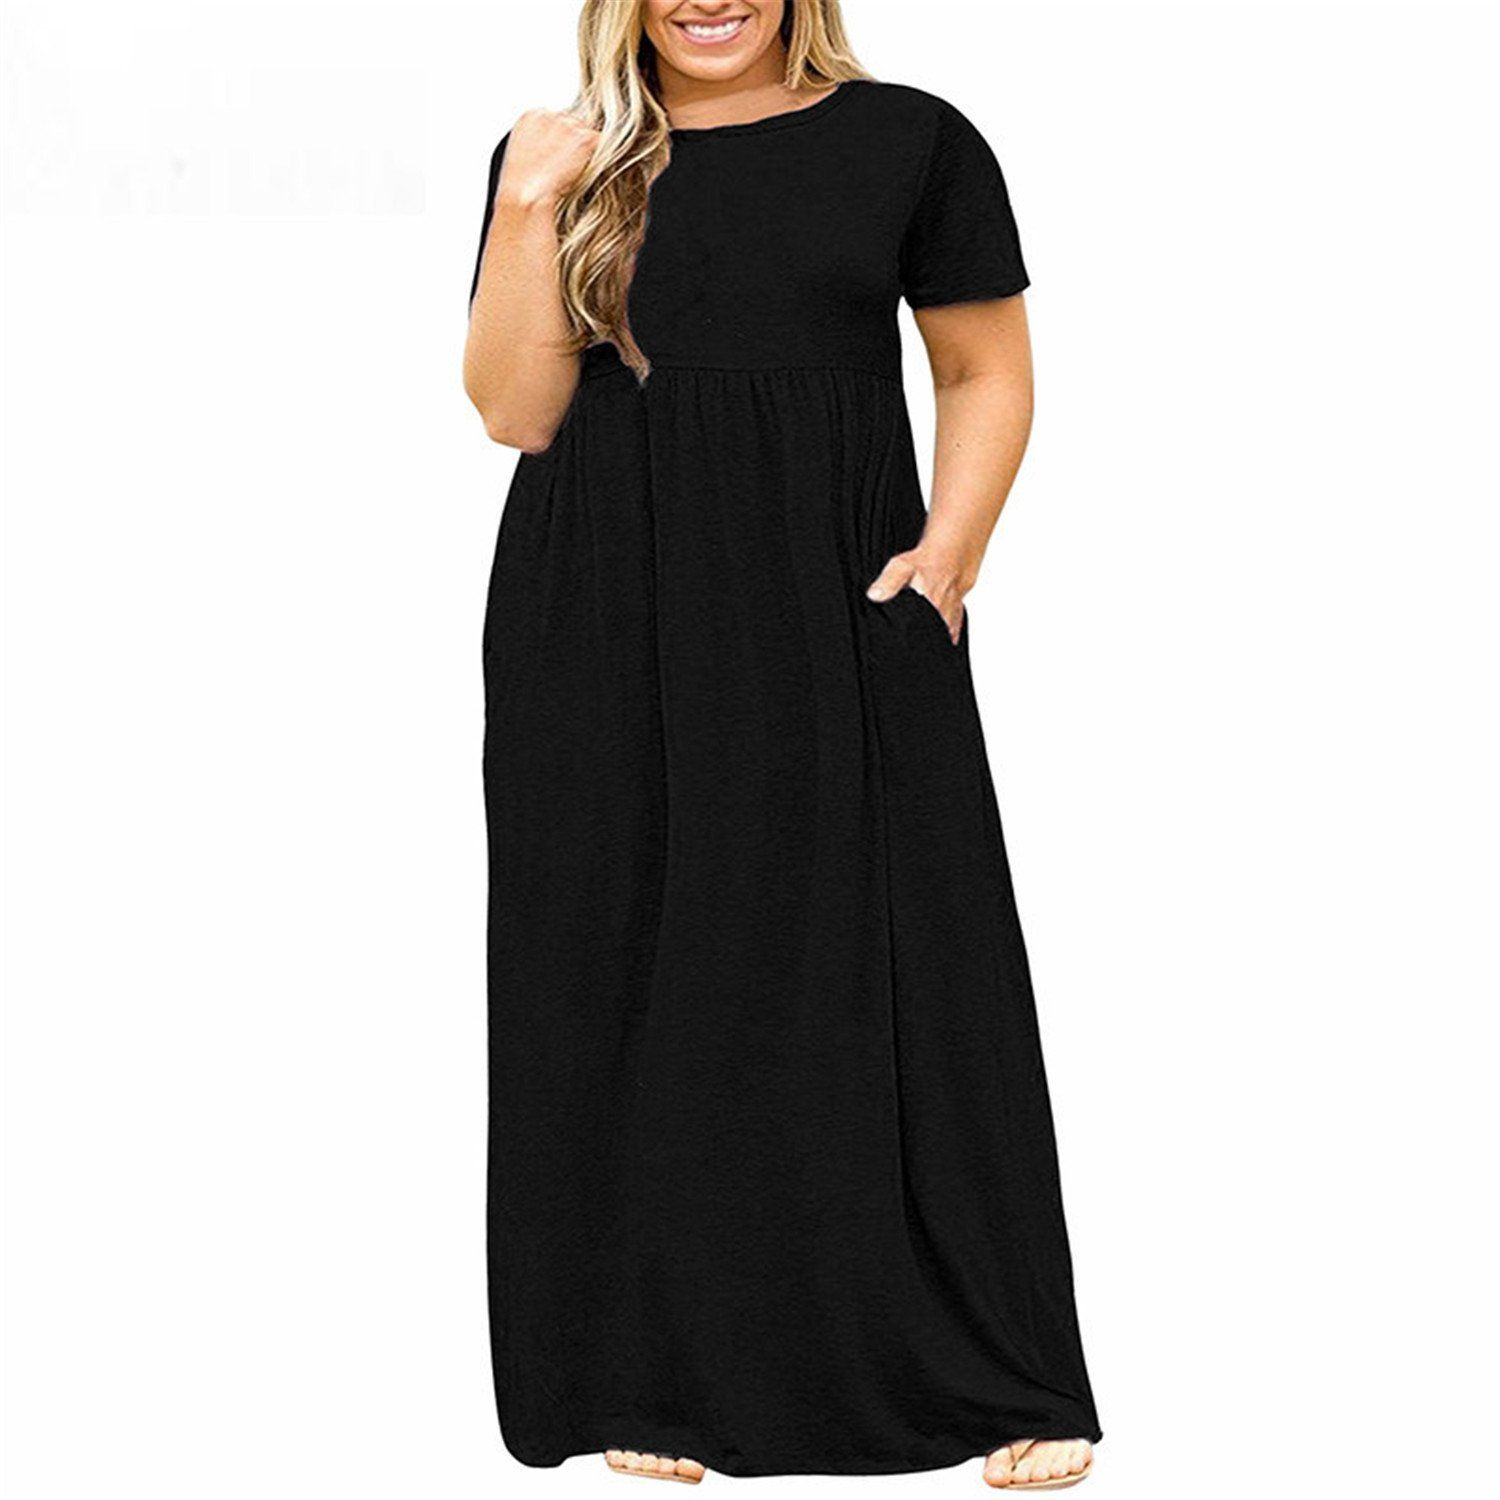 24da33969e1 Baqijian Women ONeck Short Sleeve Long Casual Dress Plus Size 7XL 8XL with  Pockets Solid Vintage Maxi Dress Black 9XL -- Check this awesome product by  going ...